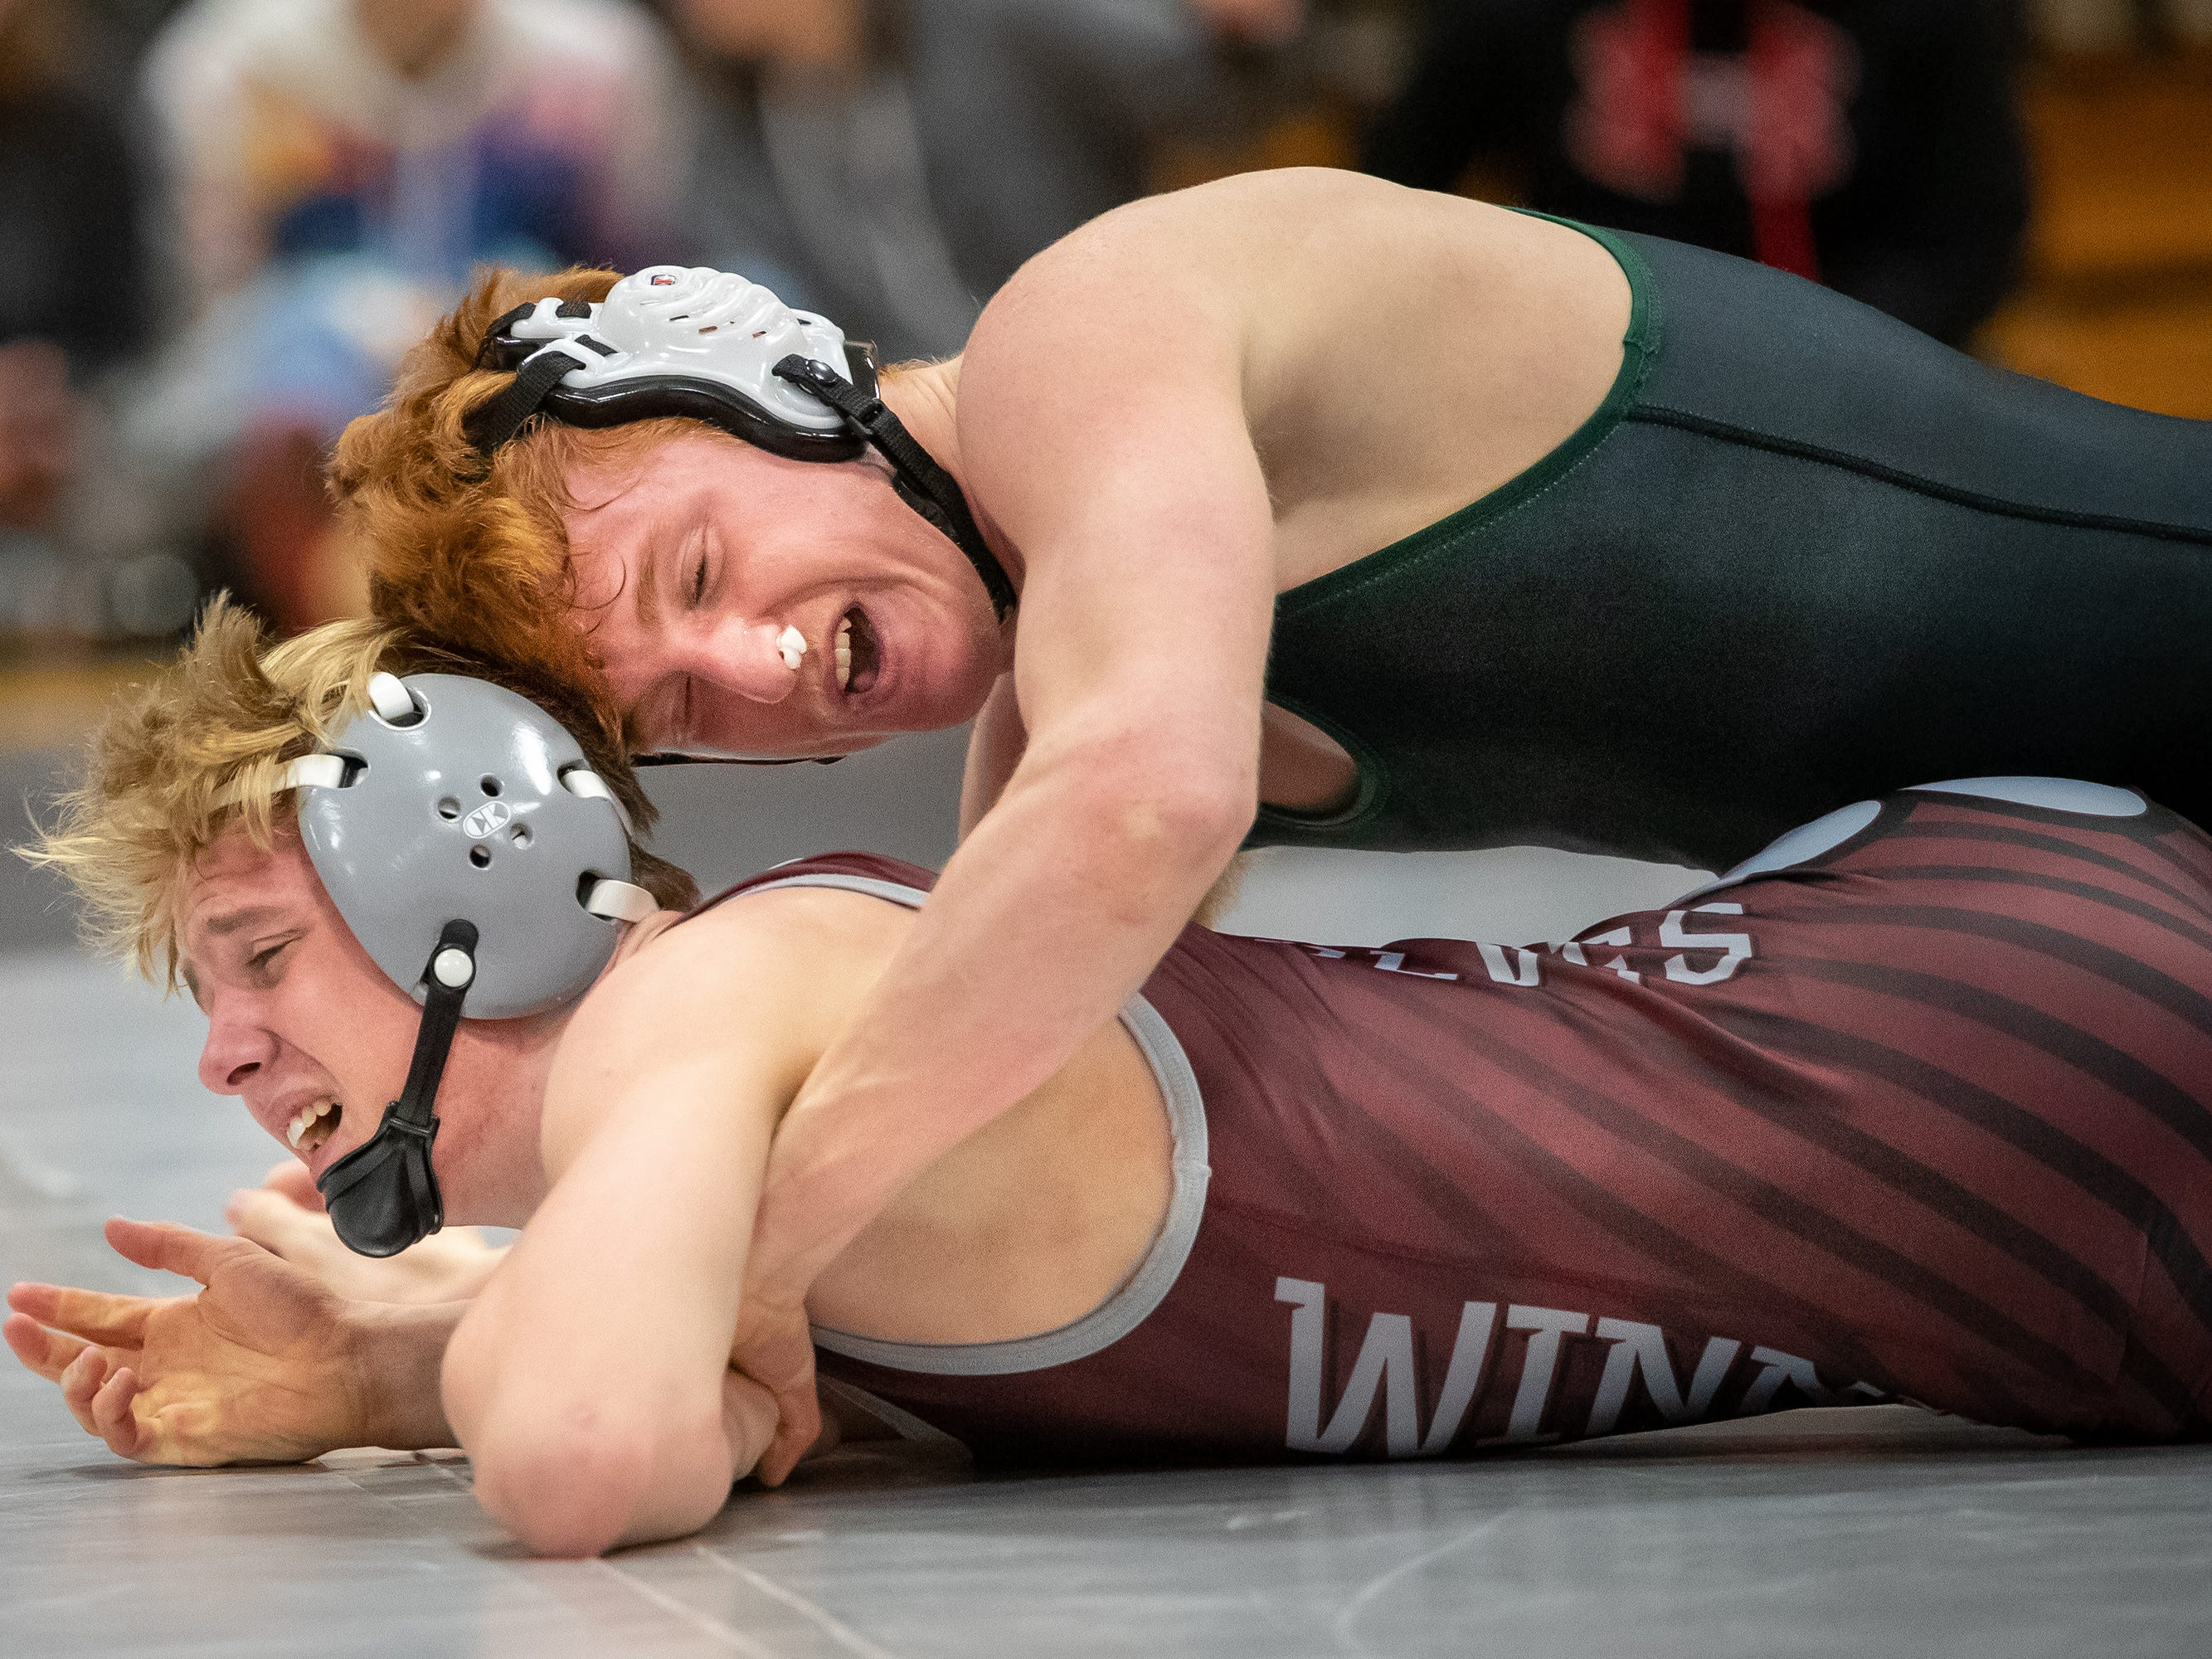 Jacob Larsen of Winneconne wrestles Scott McGibbon of Berlin in the 132-pound weight class. The Winneconne Wolves hosted the Berlin Indians in an East Central Conference wrestling match Thursday evening, January 10, 2018.